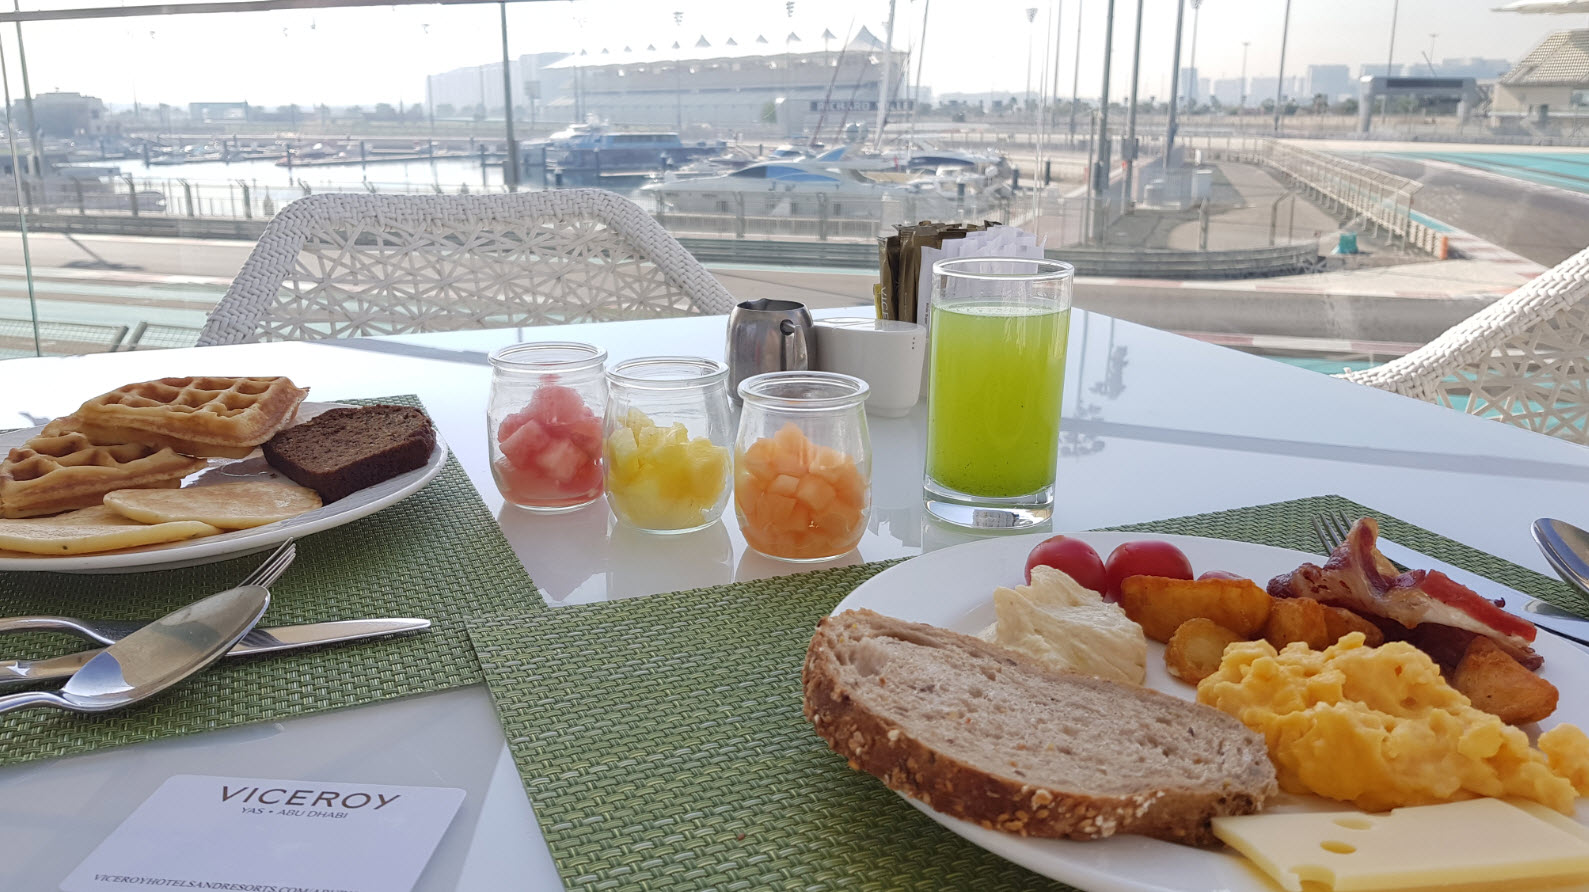 Breakfast circuit F1 view